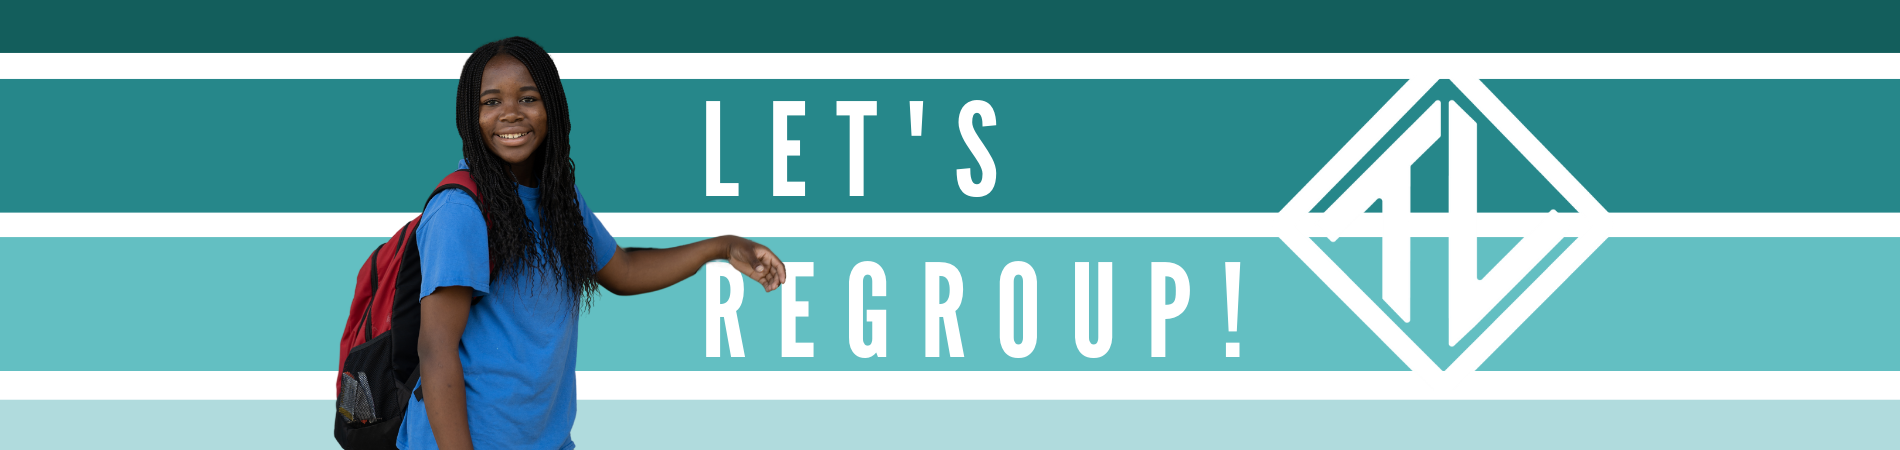 Let's Regroup!